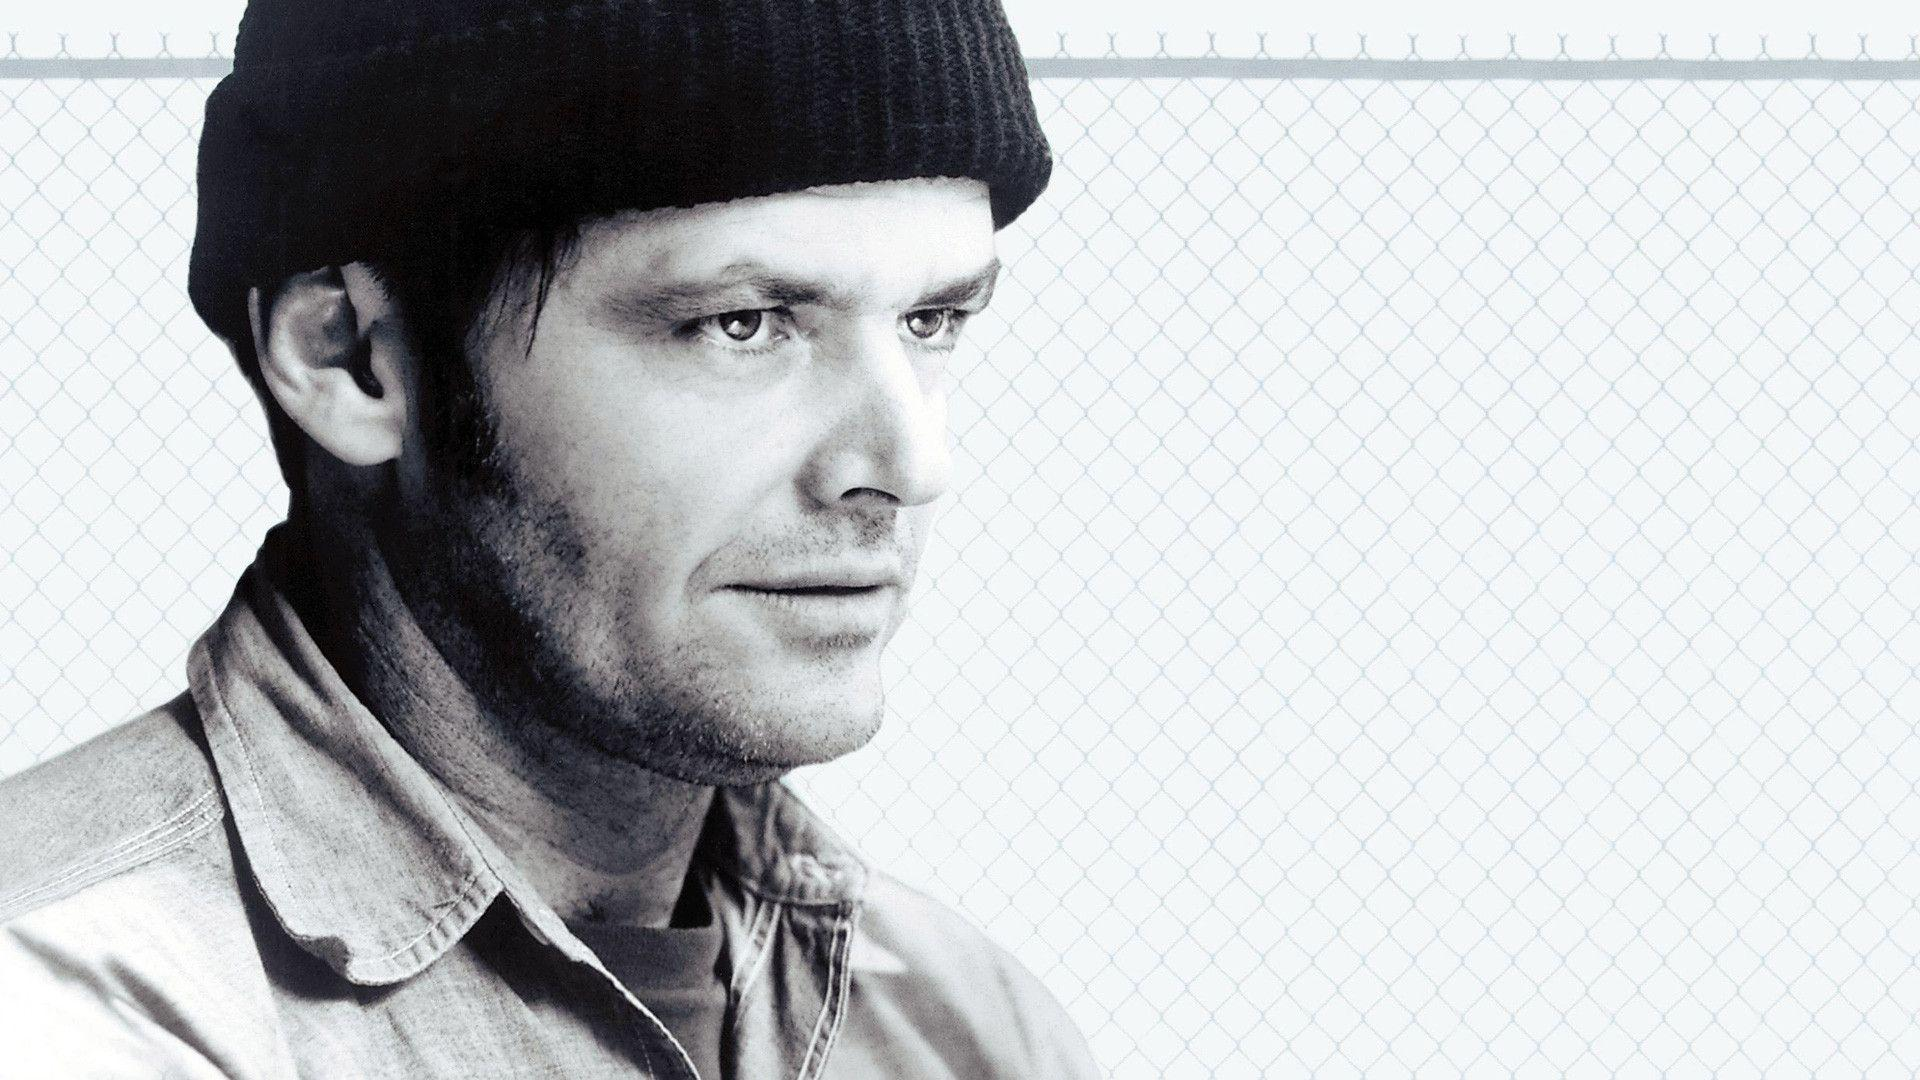 ONE FLEW OVER THE CUCKOOS NEST jack nicholson hd wallpaper ...